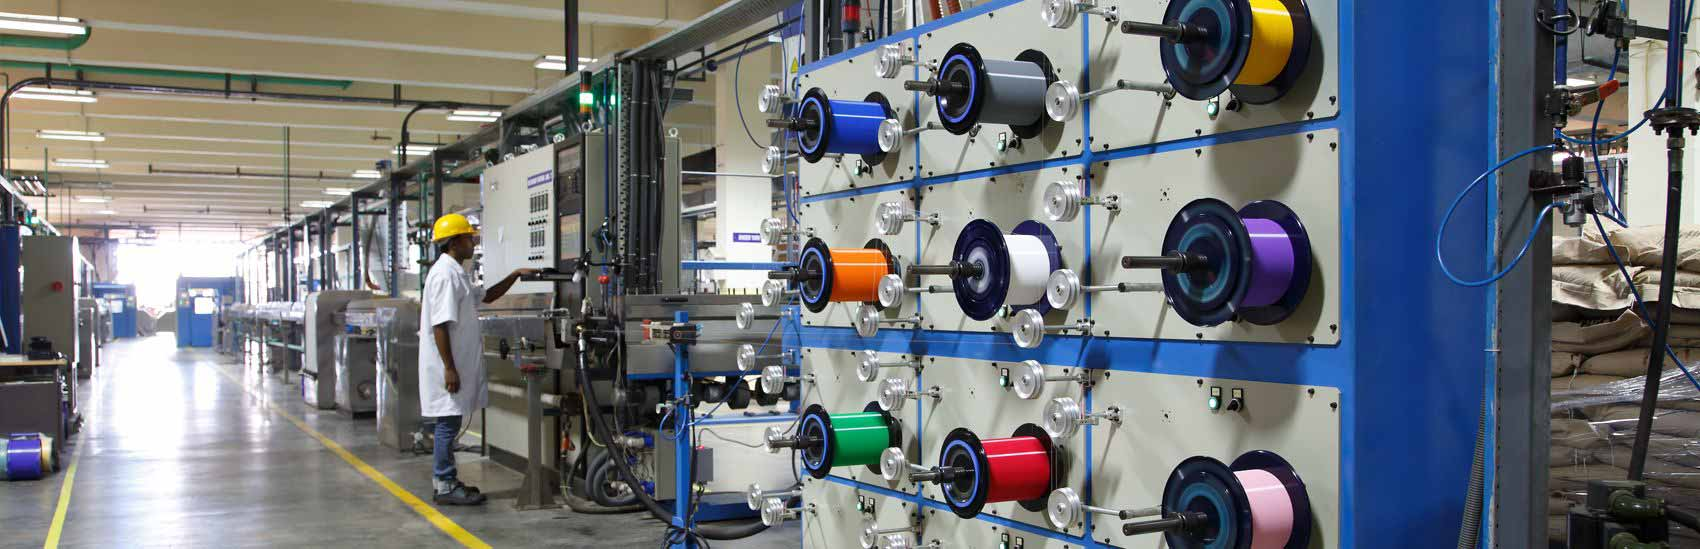 Optical Fiber Cables Manufacturing Unit